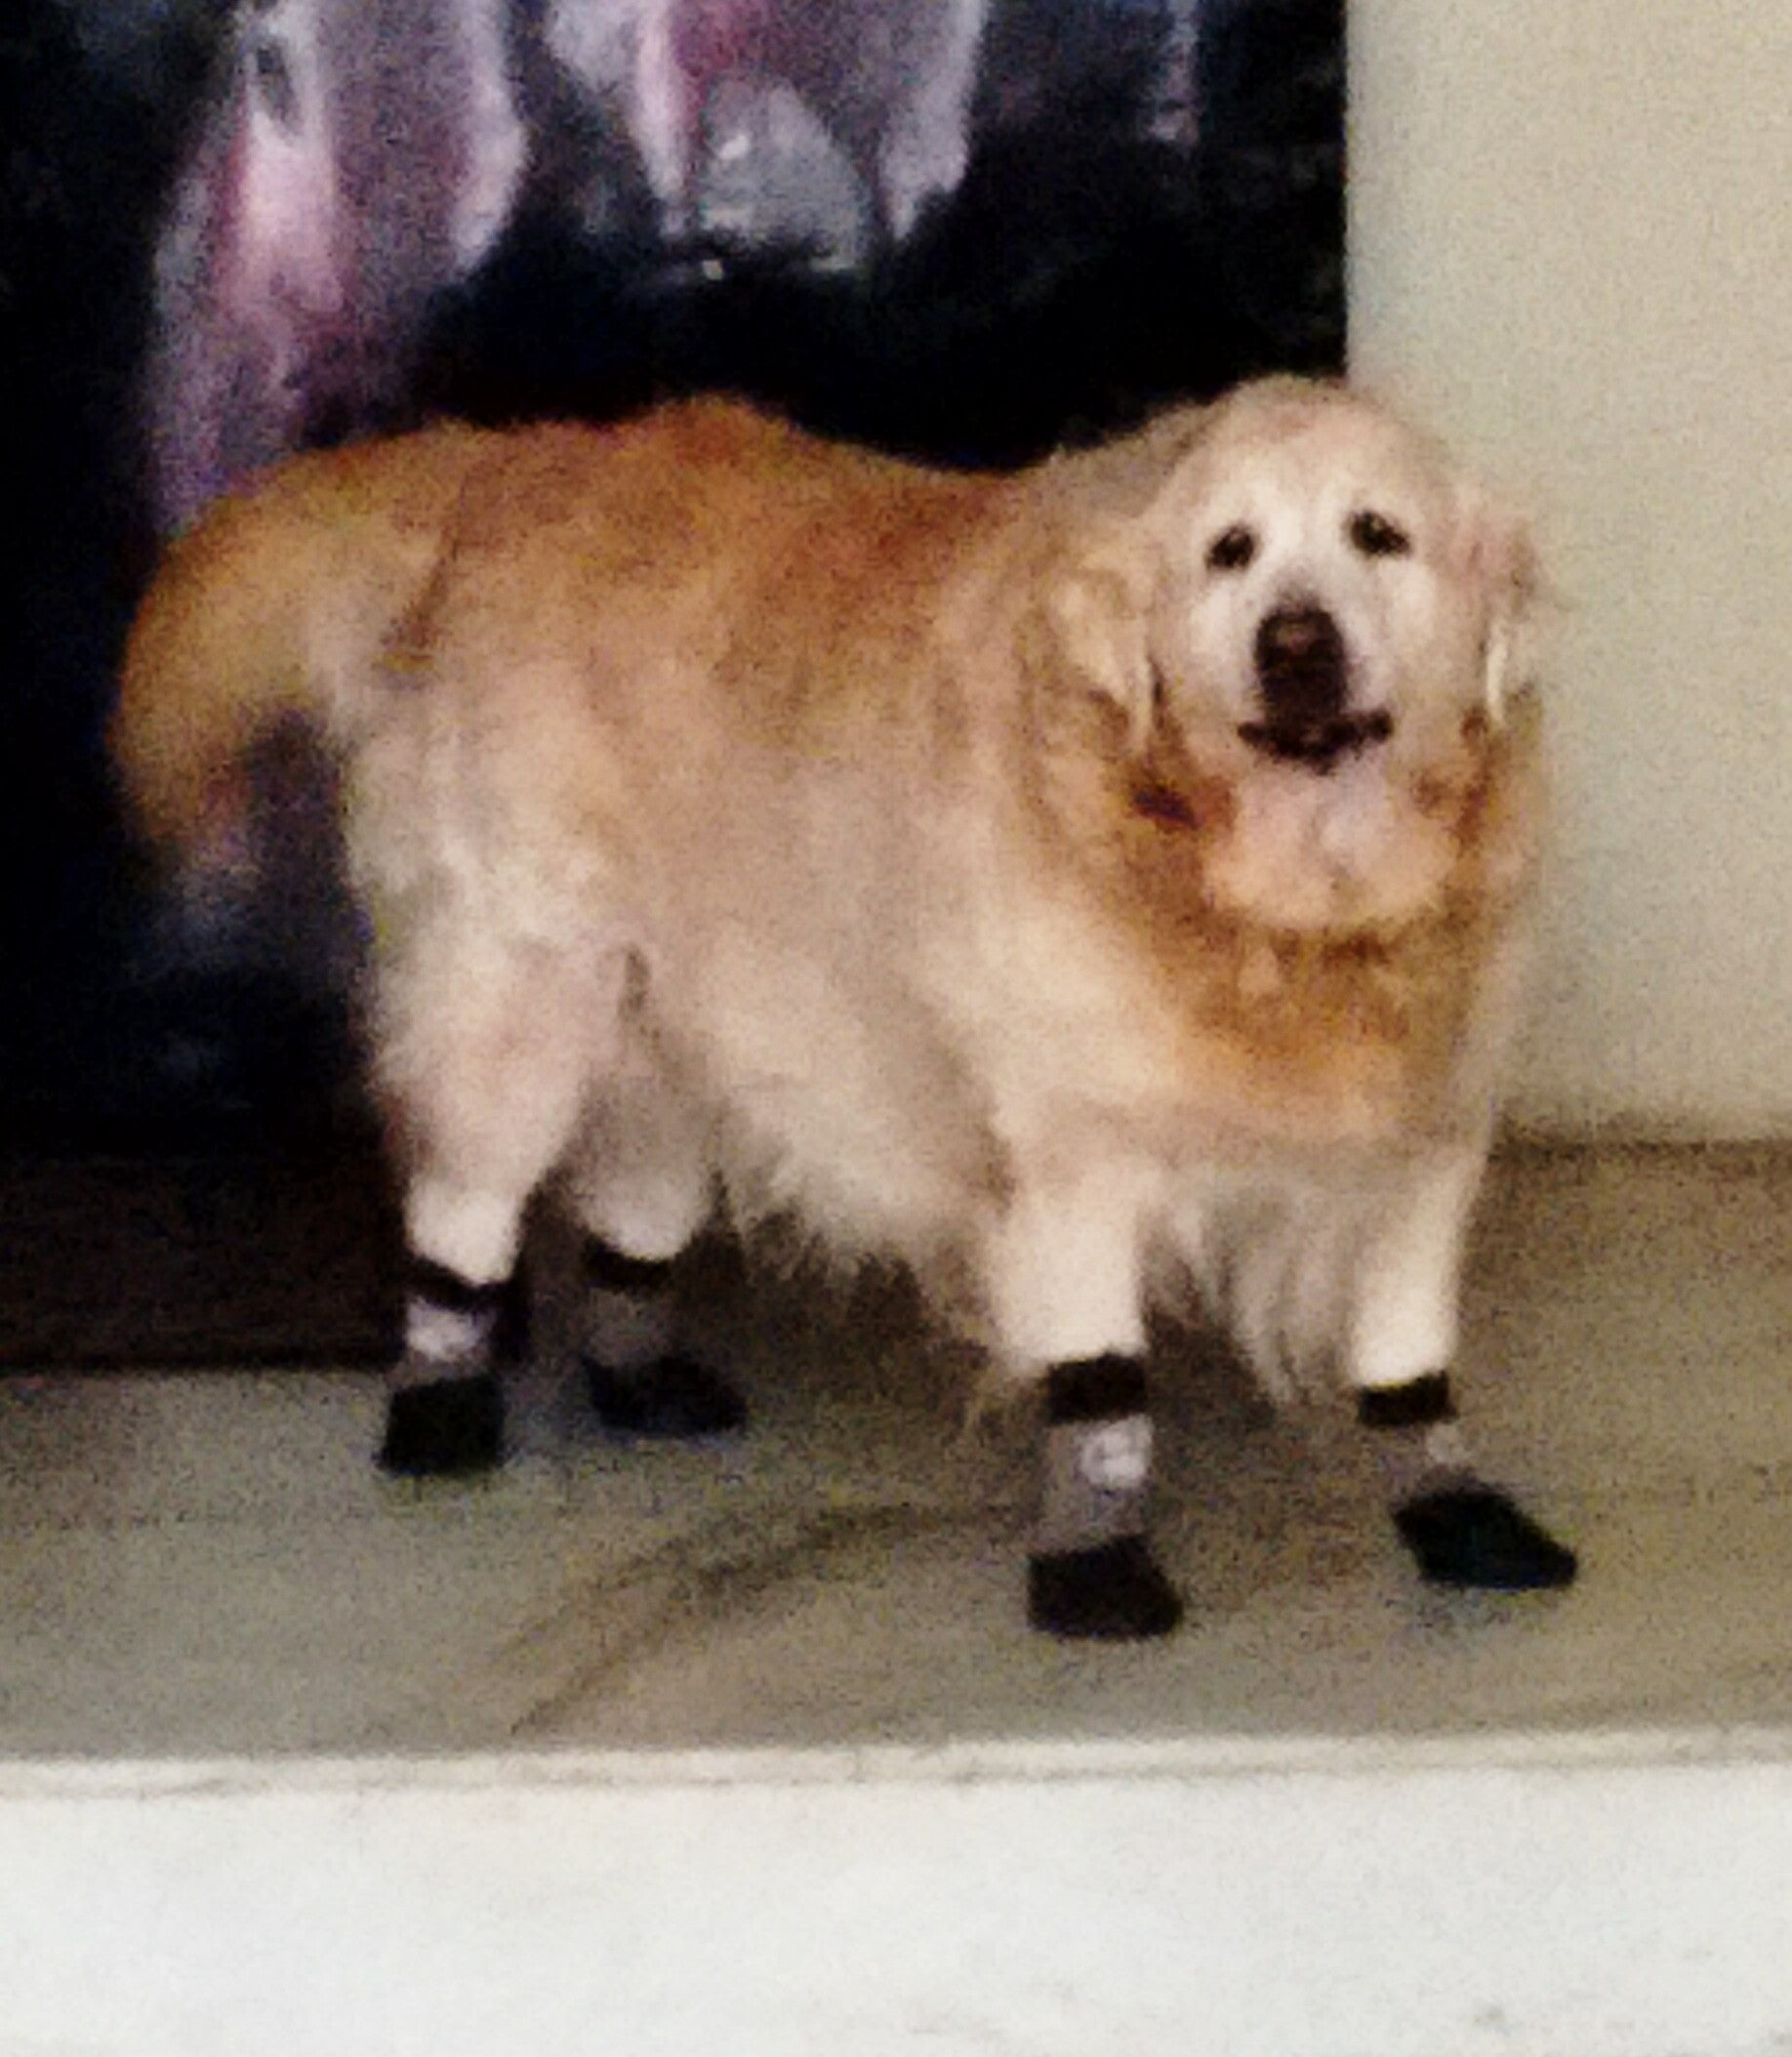 Grippers dog socks